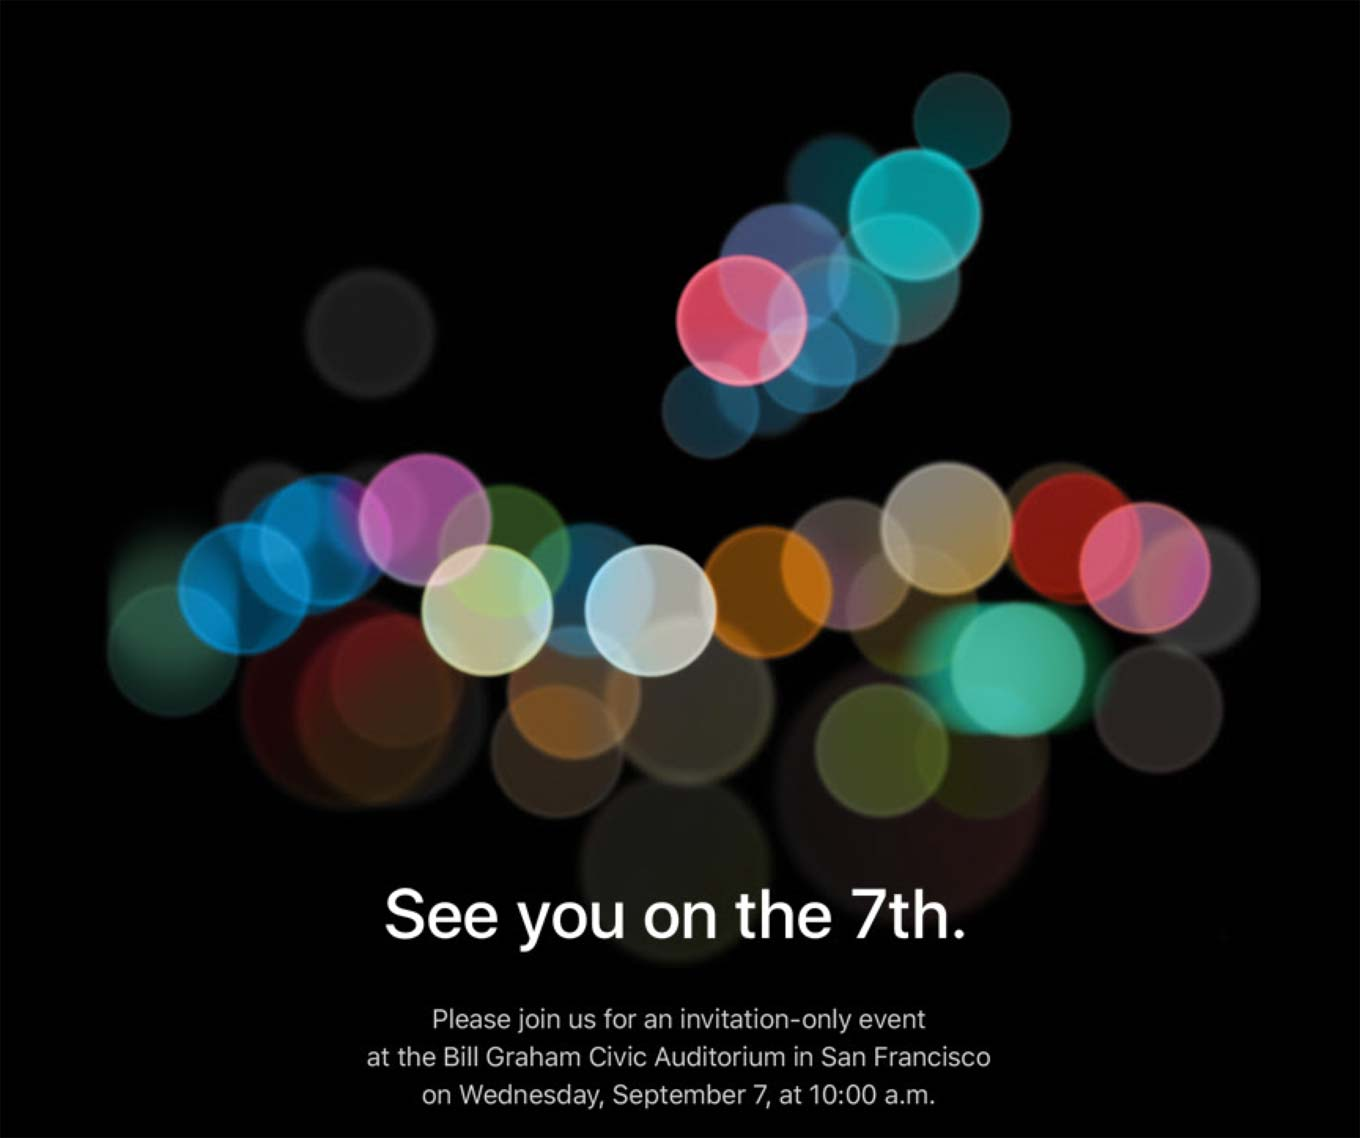 apple-sept7-invite-6c-2